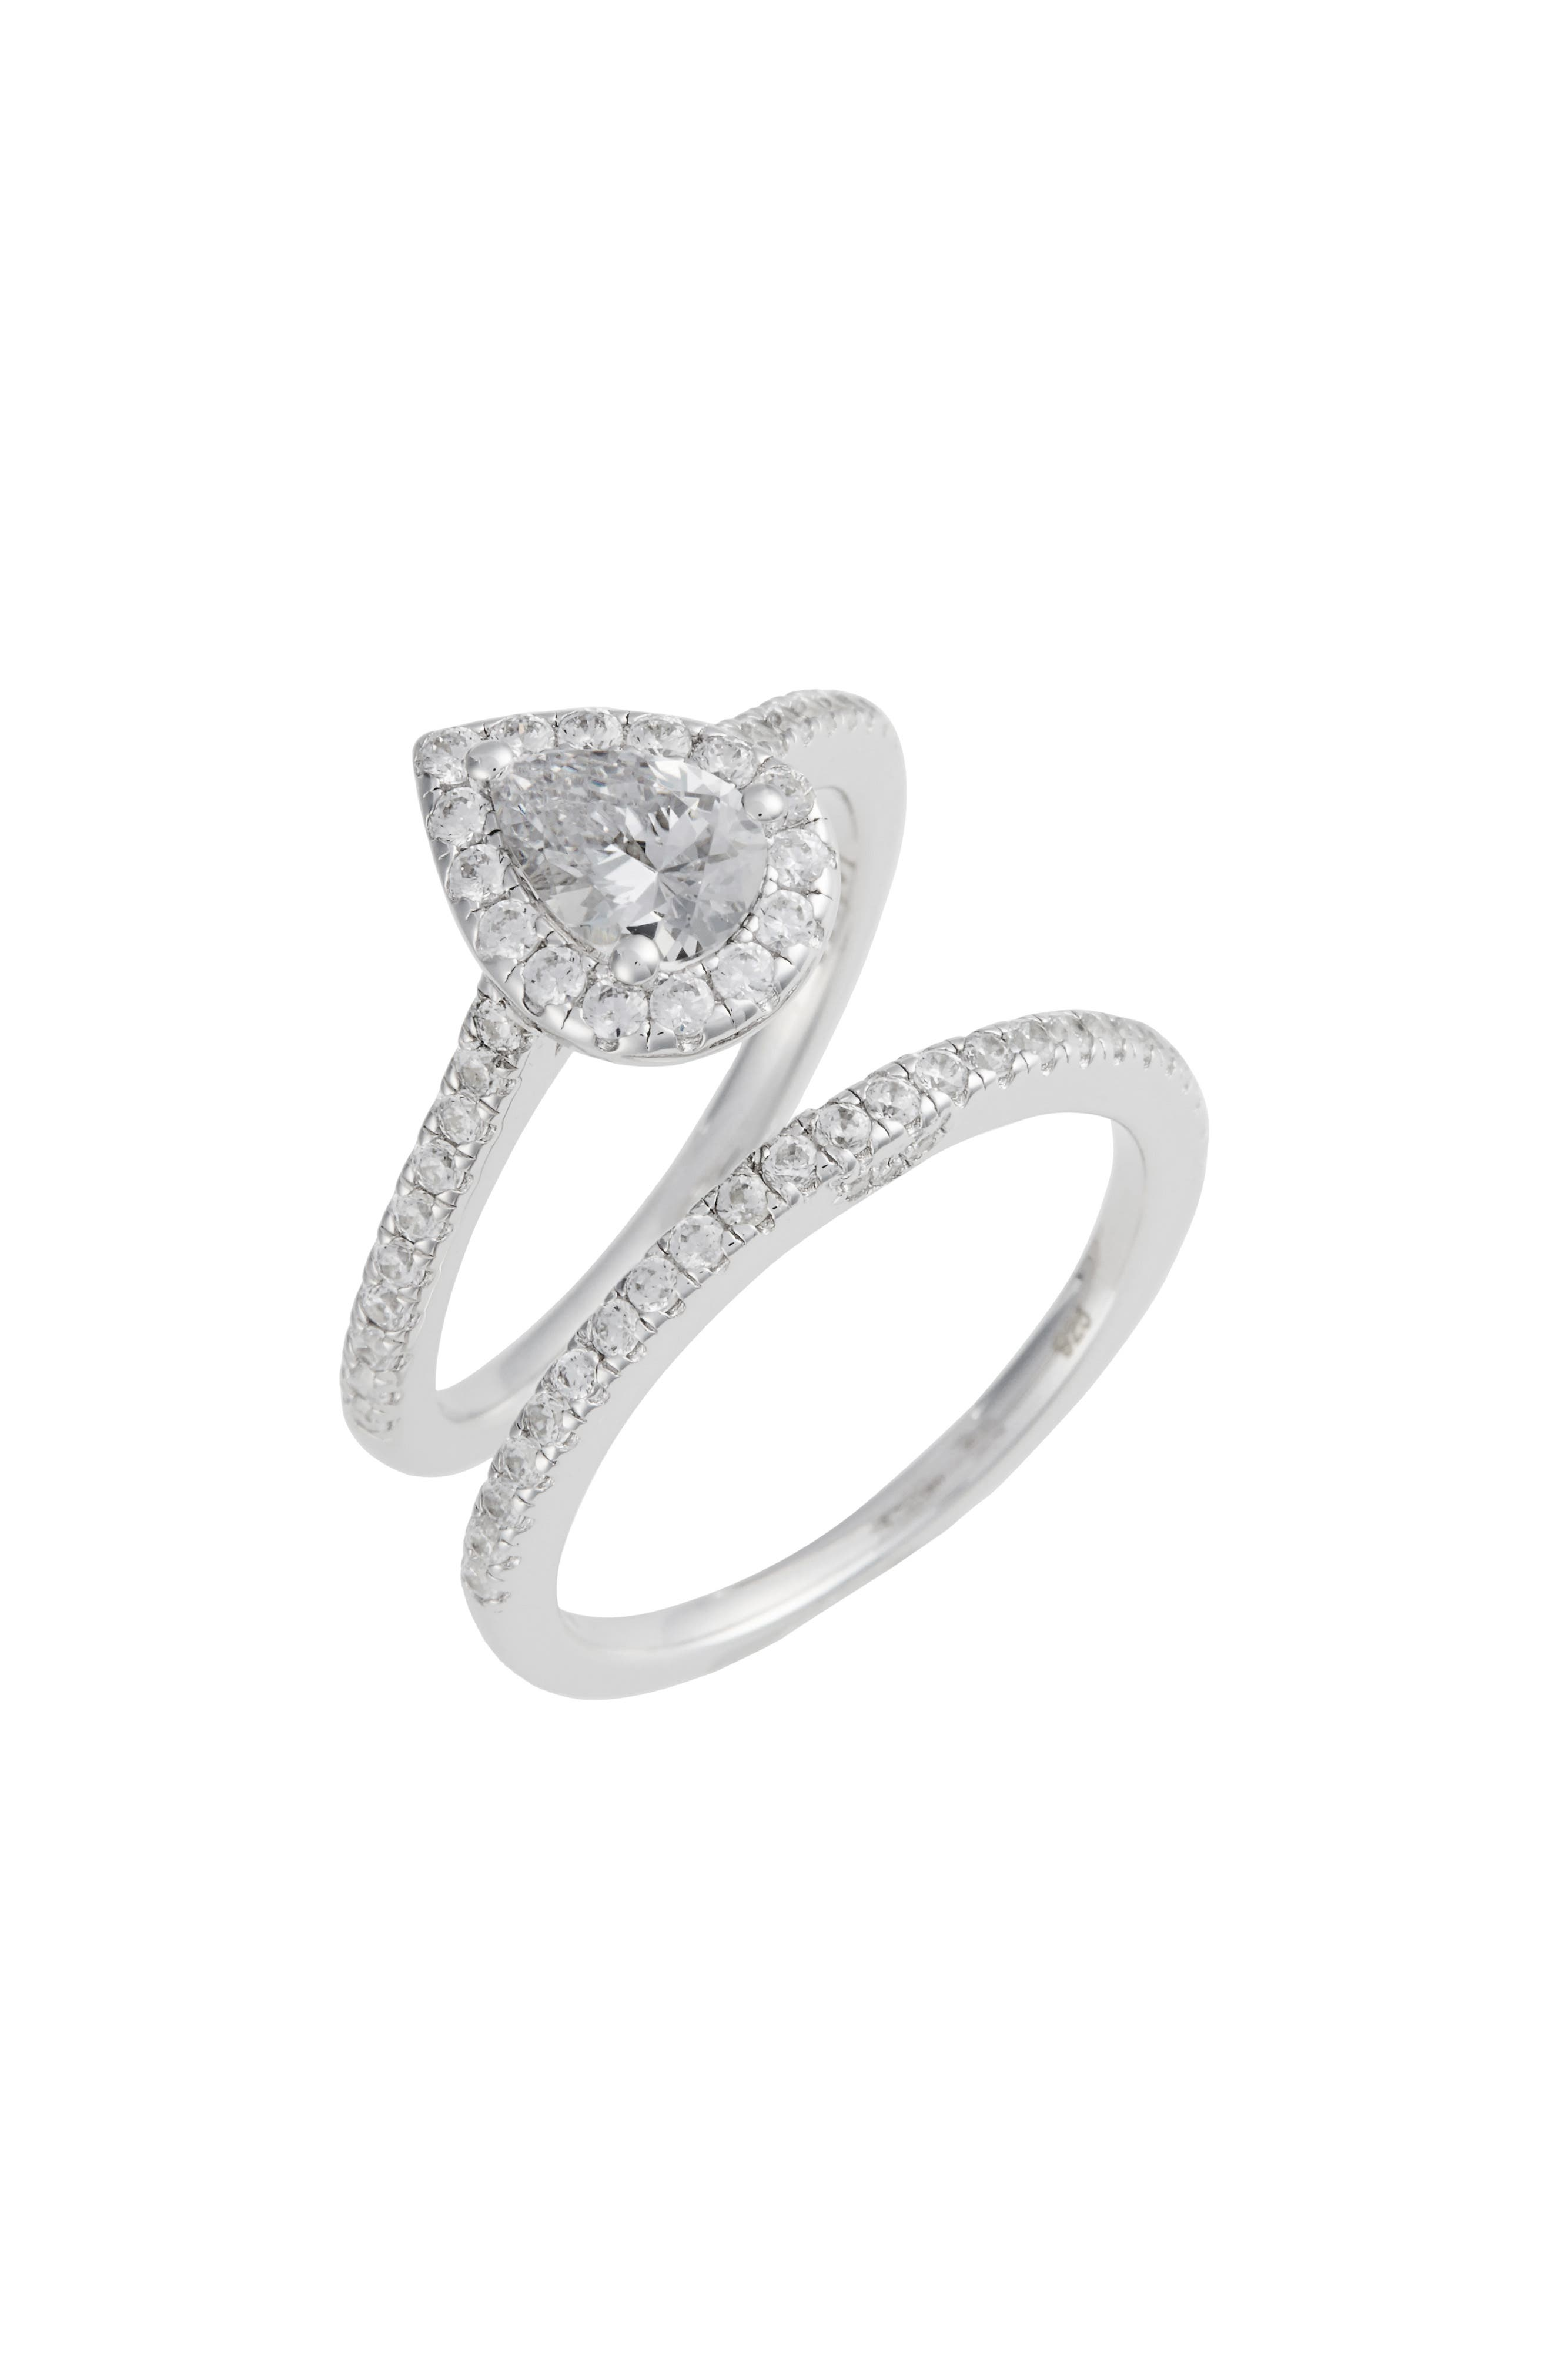 Joined at the Heart Pear-Shaped Halo Ring,                         Main,                         color, SILVER/ CLEAR